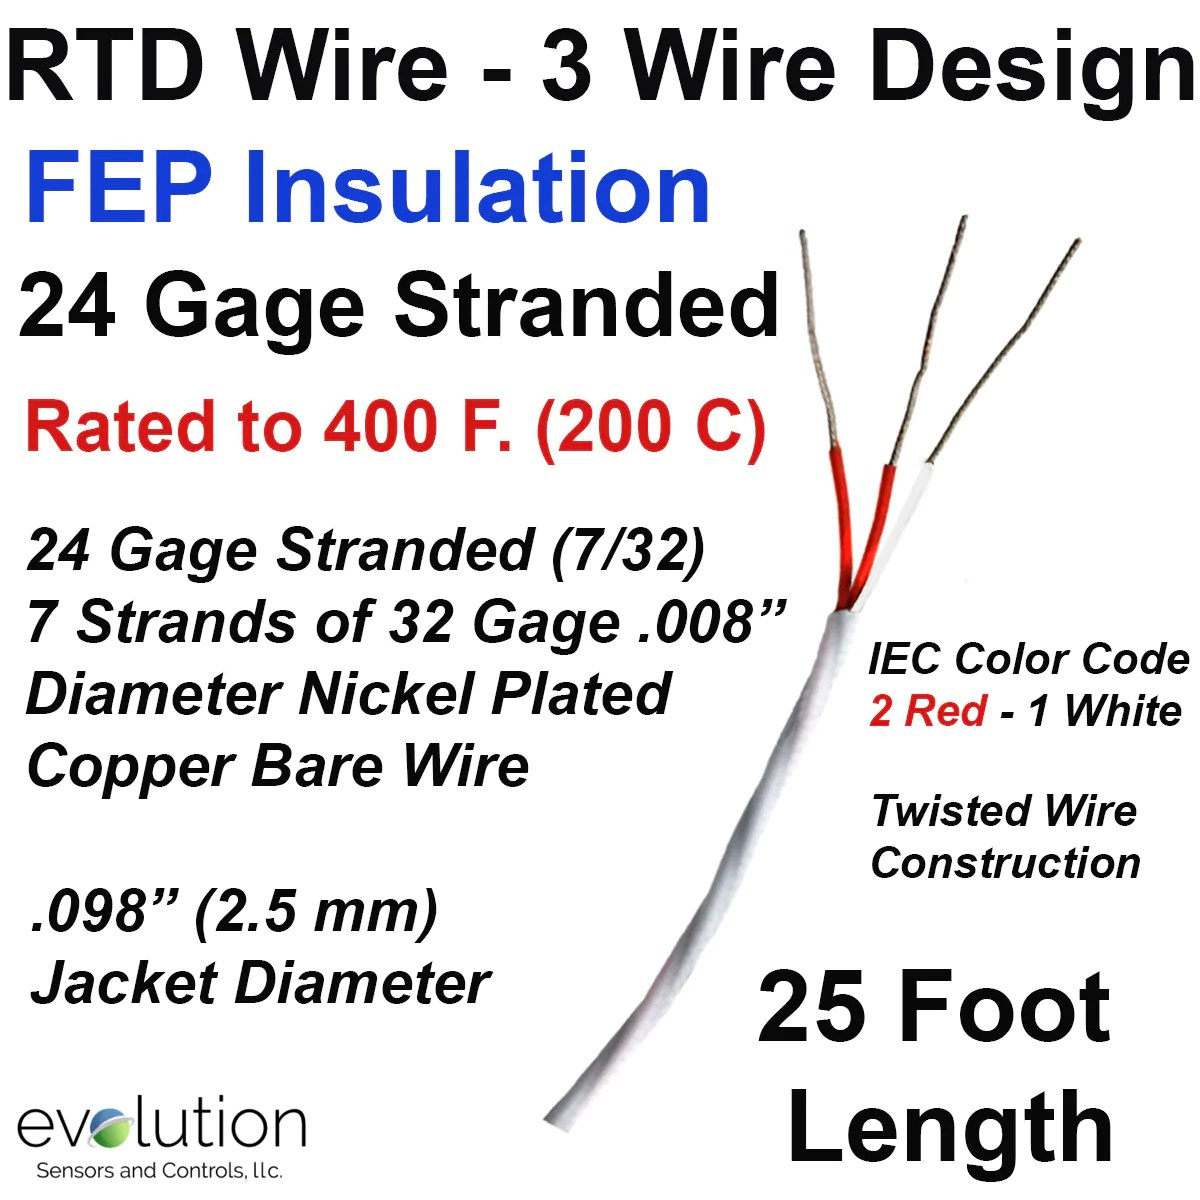 hight resolution of rtd wiring color code home wiring diagram rtd 3 wire color code rtd wire 3 wire